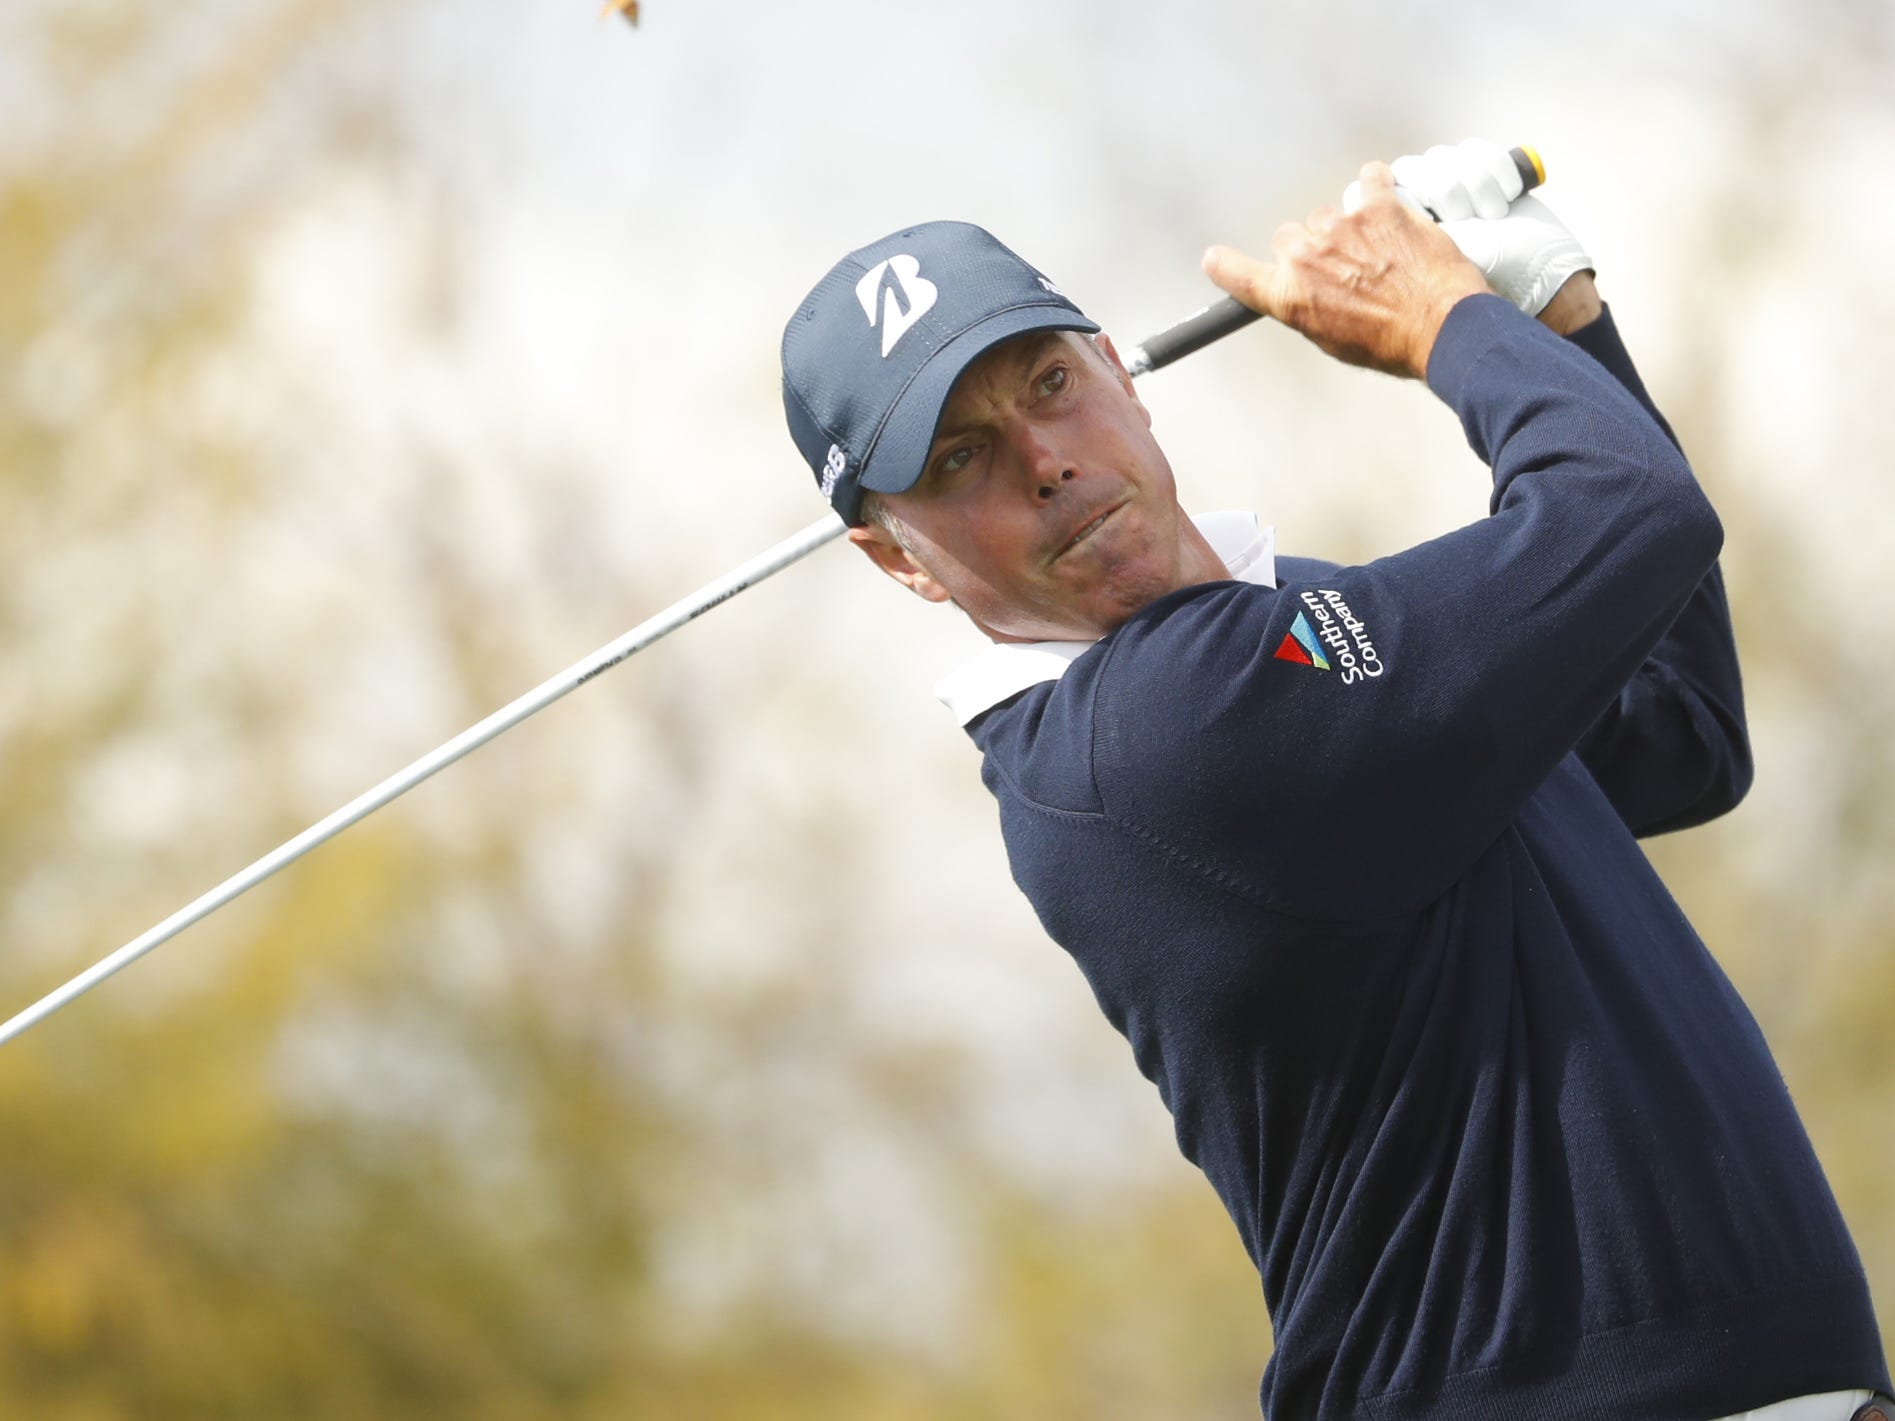 Matt Kuchar tees off on the 8th hole during the third round of the Waste Management Phoenix Open at TPC Scottsdale in Scottsdale, Ariz. on February 2, 2019.